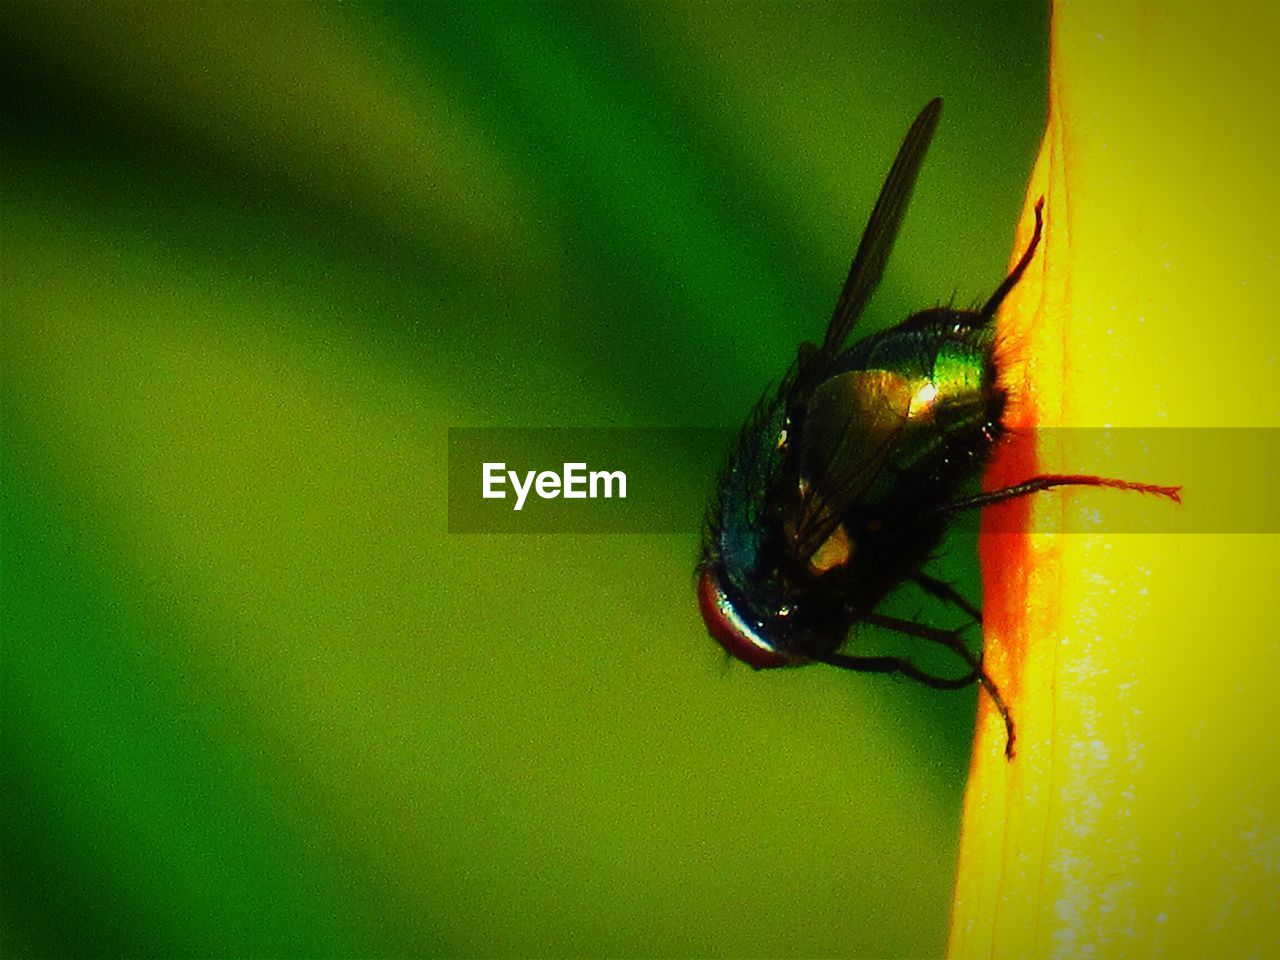 insect, animal themes, one animal, animals in the wild, no people, close-up, green color, nature, animal wildlife, outdoors, day